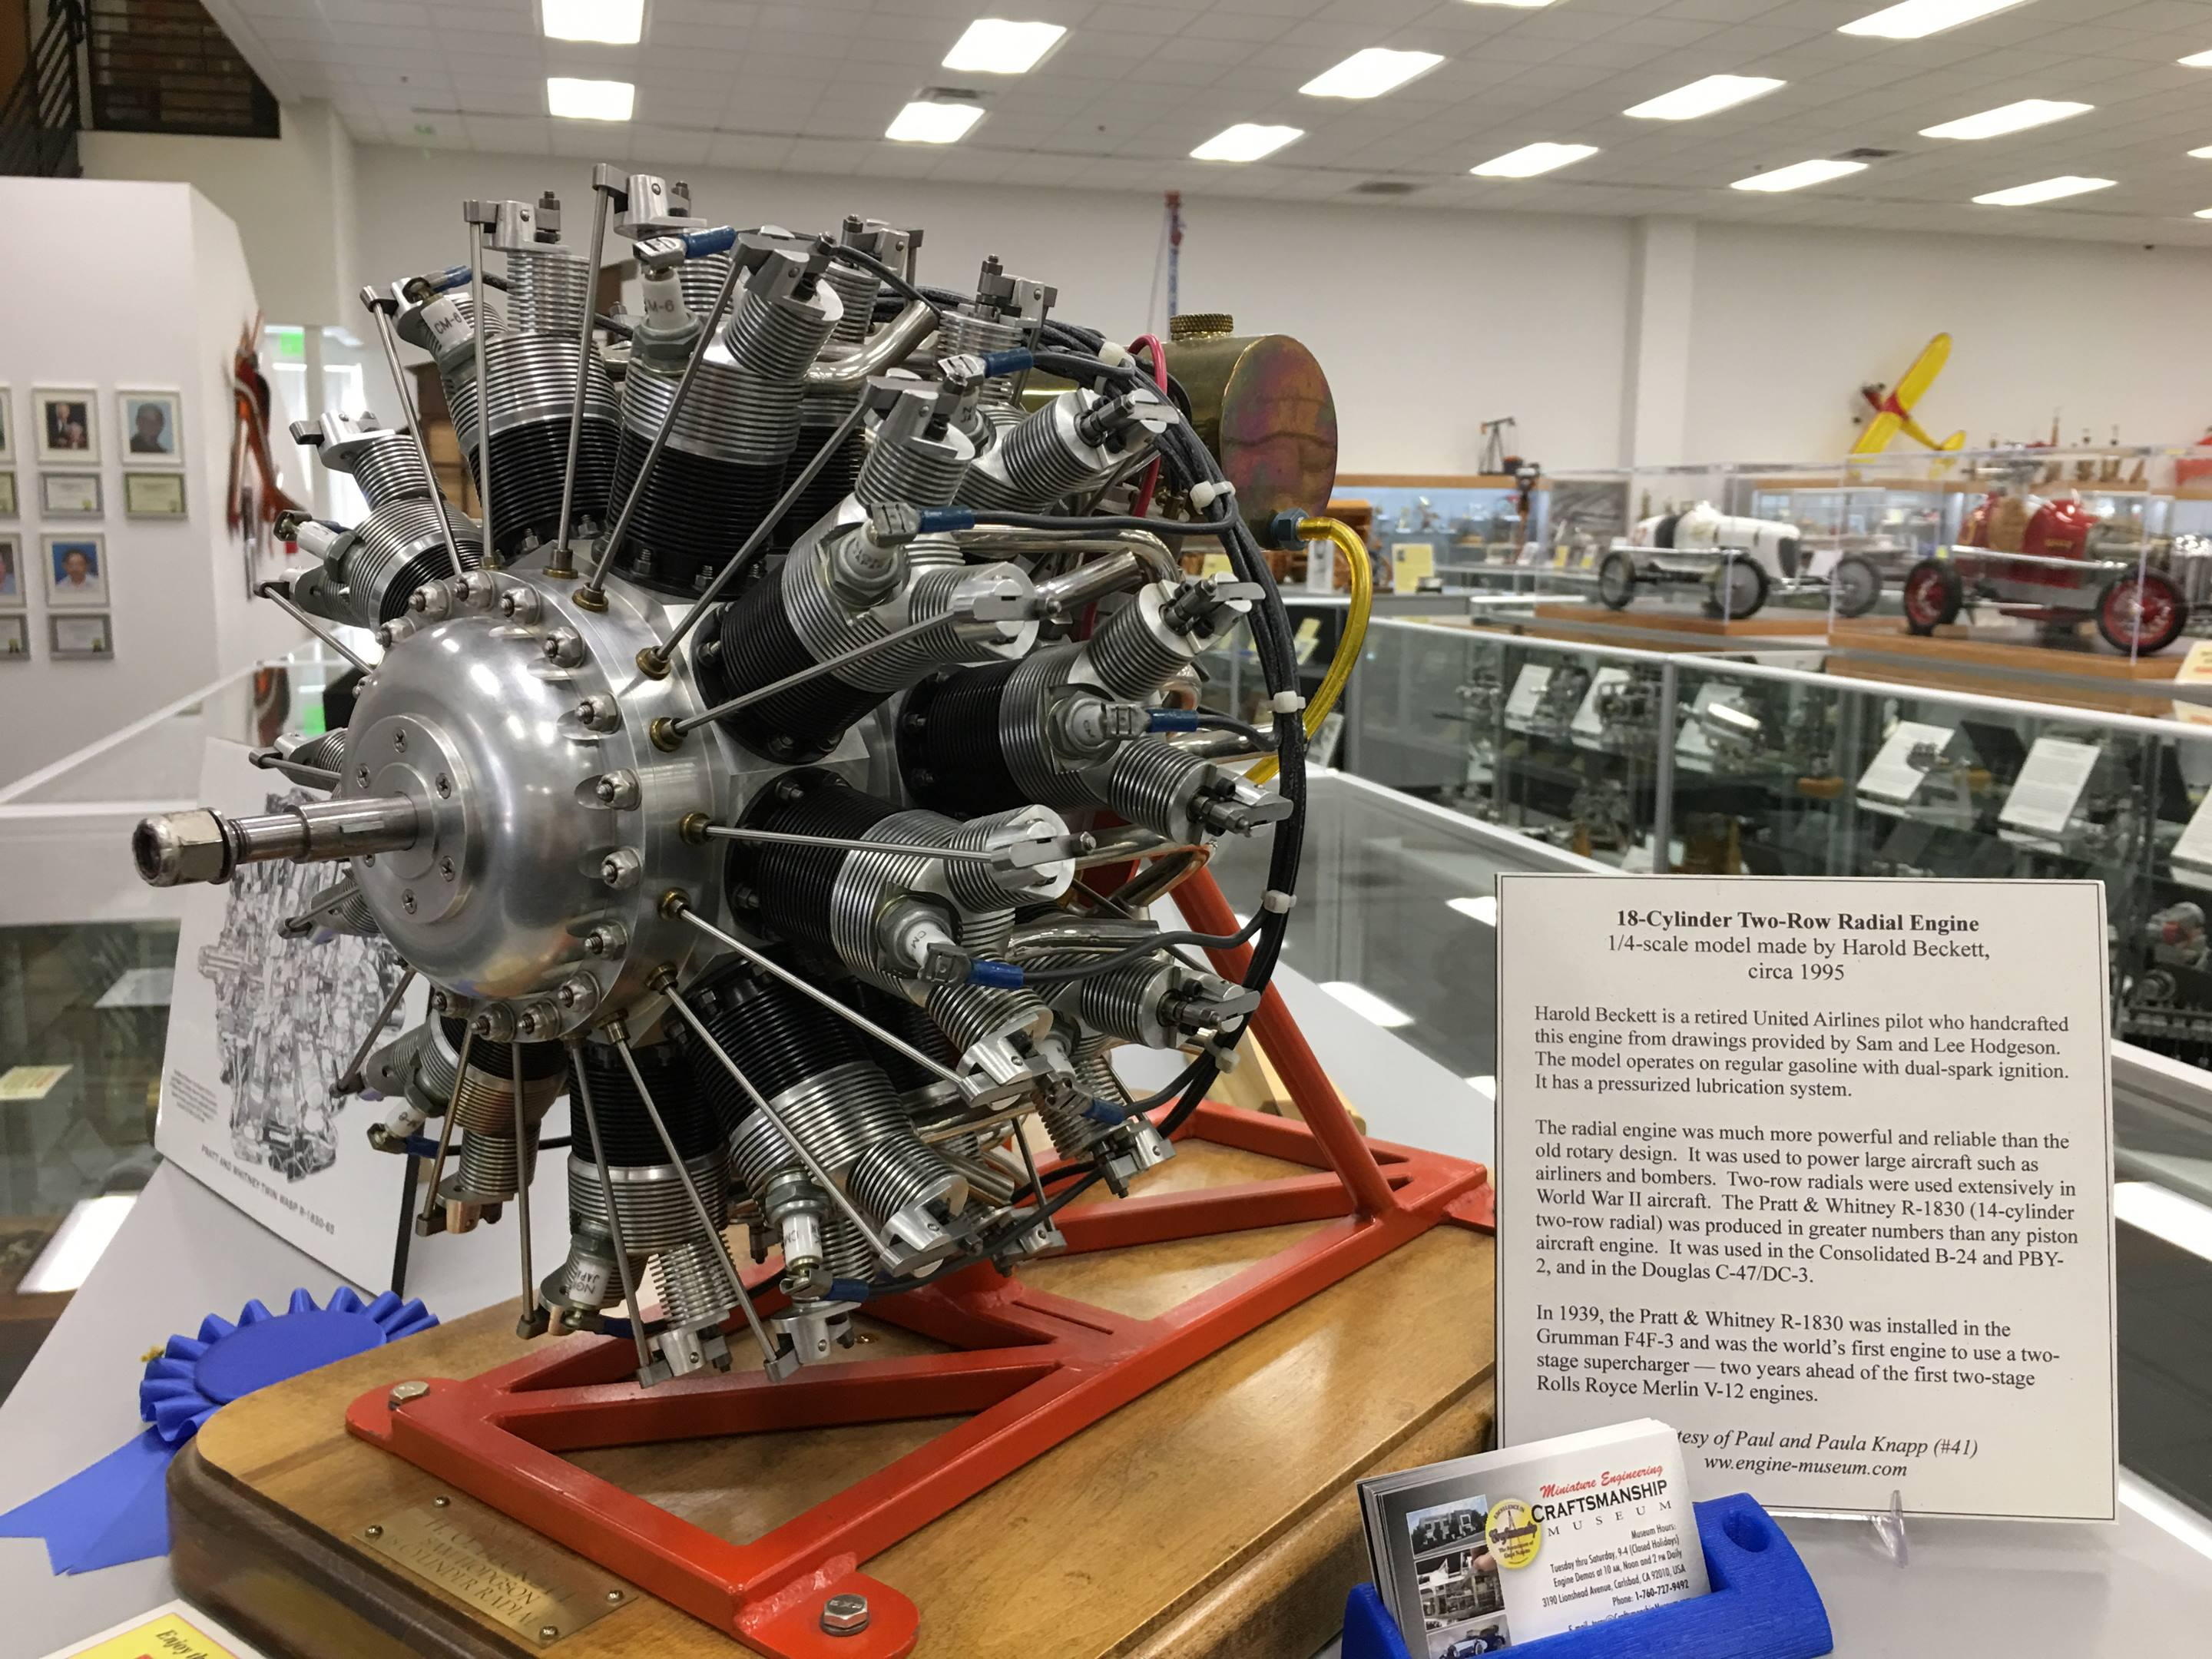 Retired United Airlines pilot Harold Beckett built this ¼-scale radial aircraft engine that evokes the radial engines of WWII, with dual spark ignition and a pressurized lubrication system.